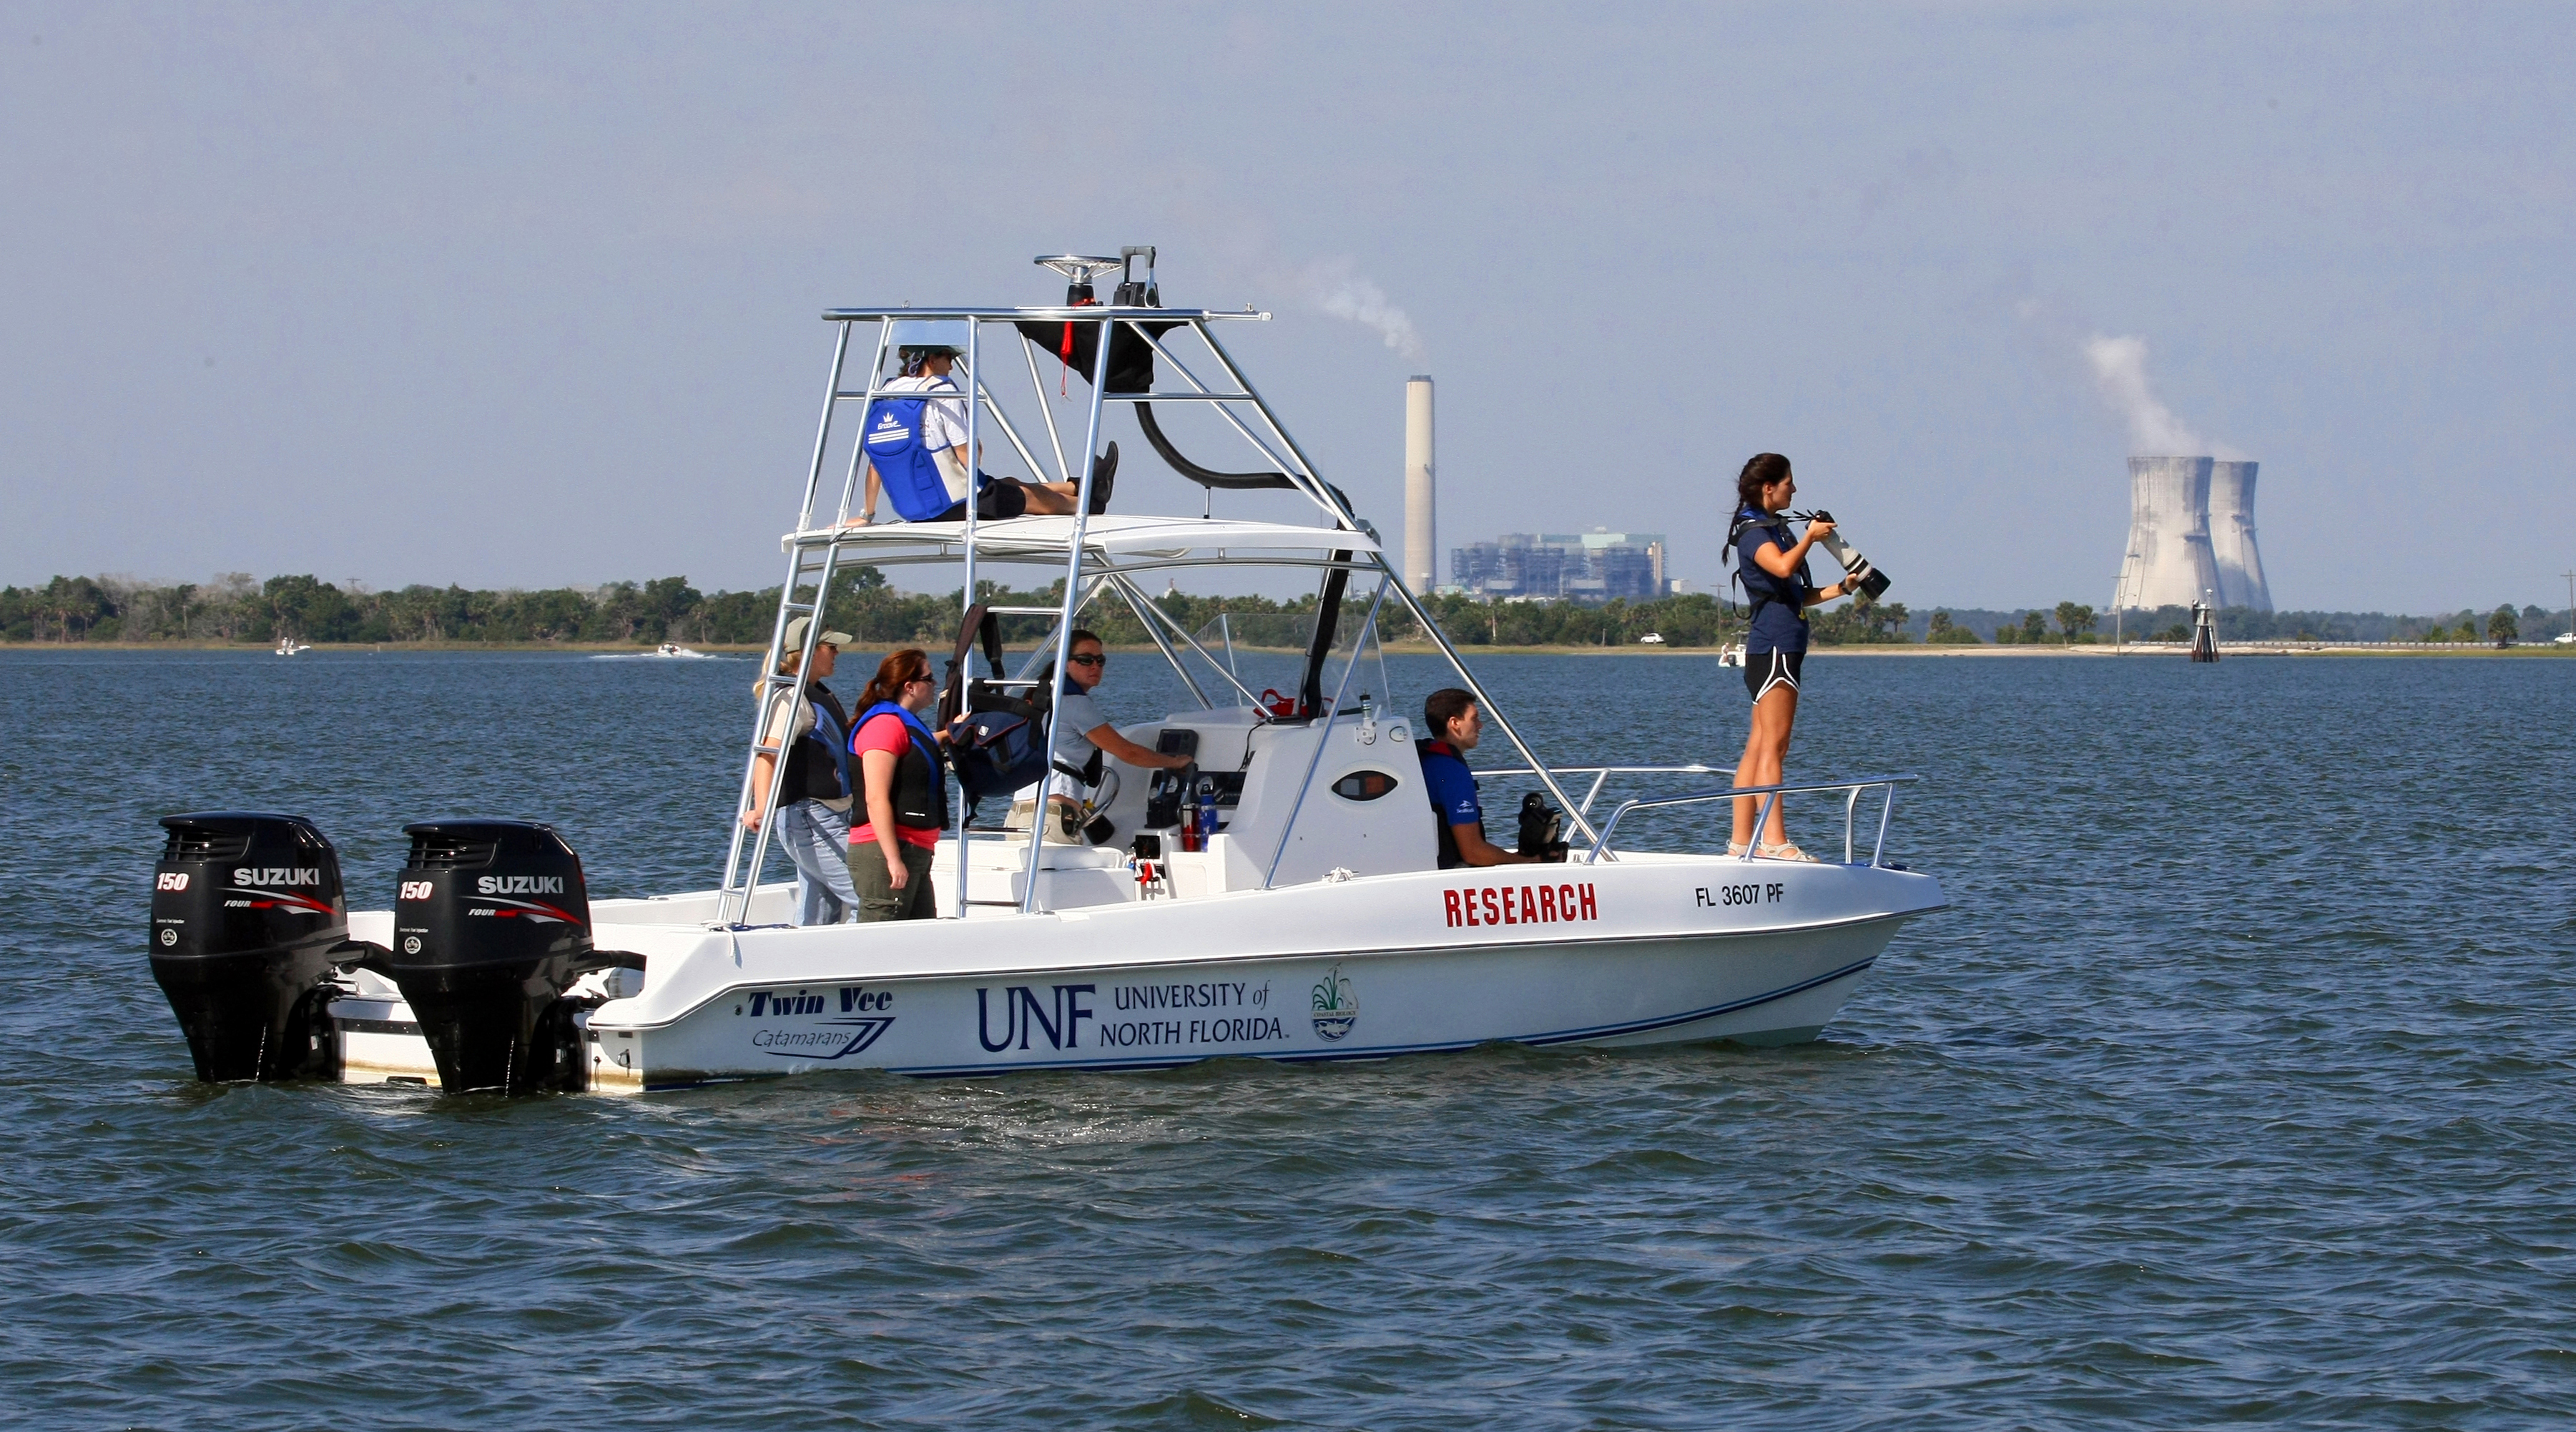 UNF Research Team and Vessel on St. Johns River